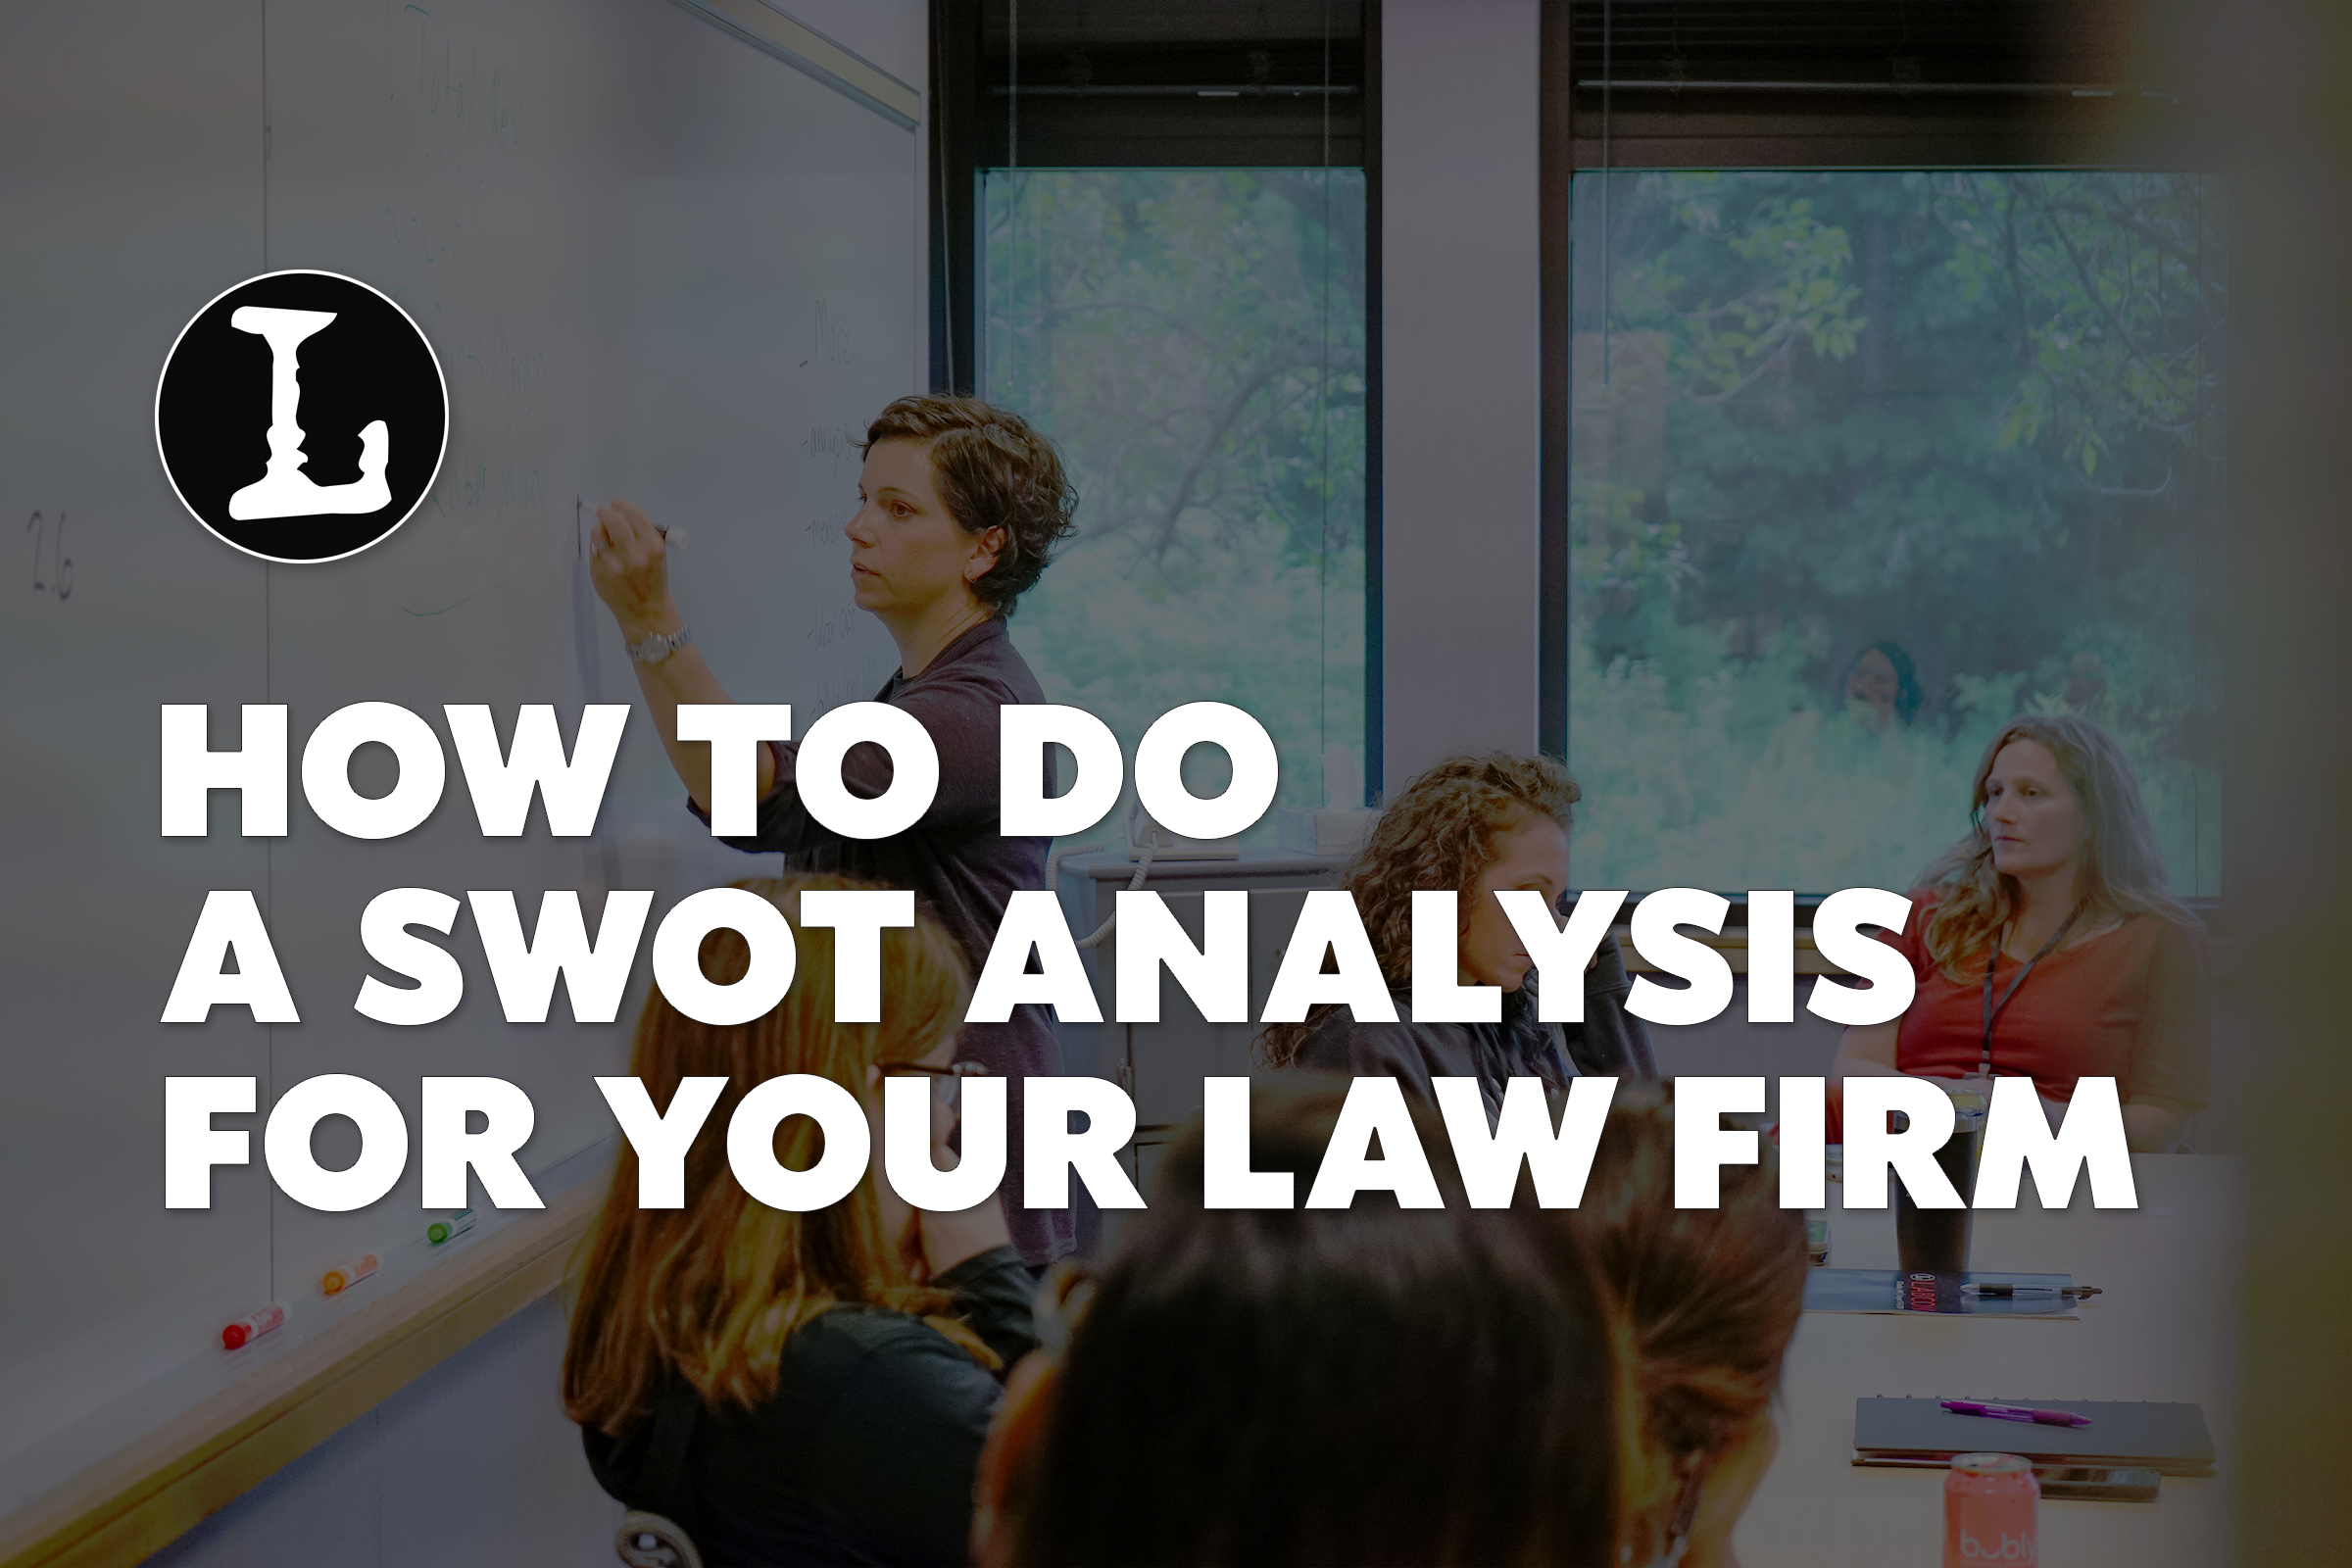 SWOT Analysis for law firms